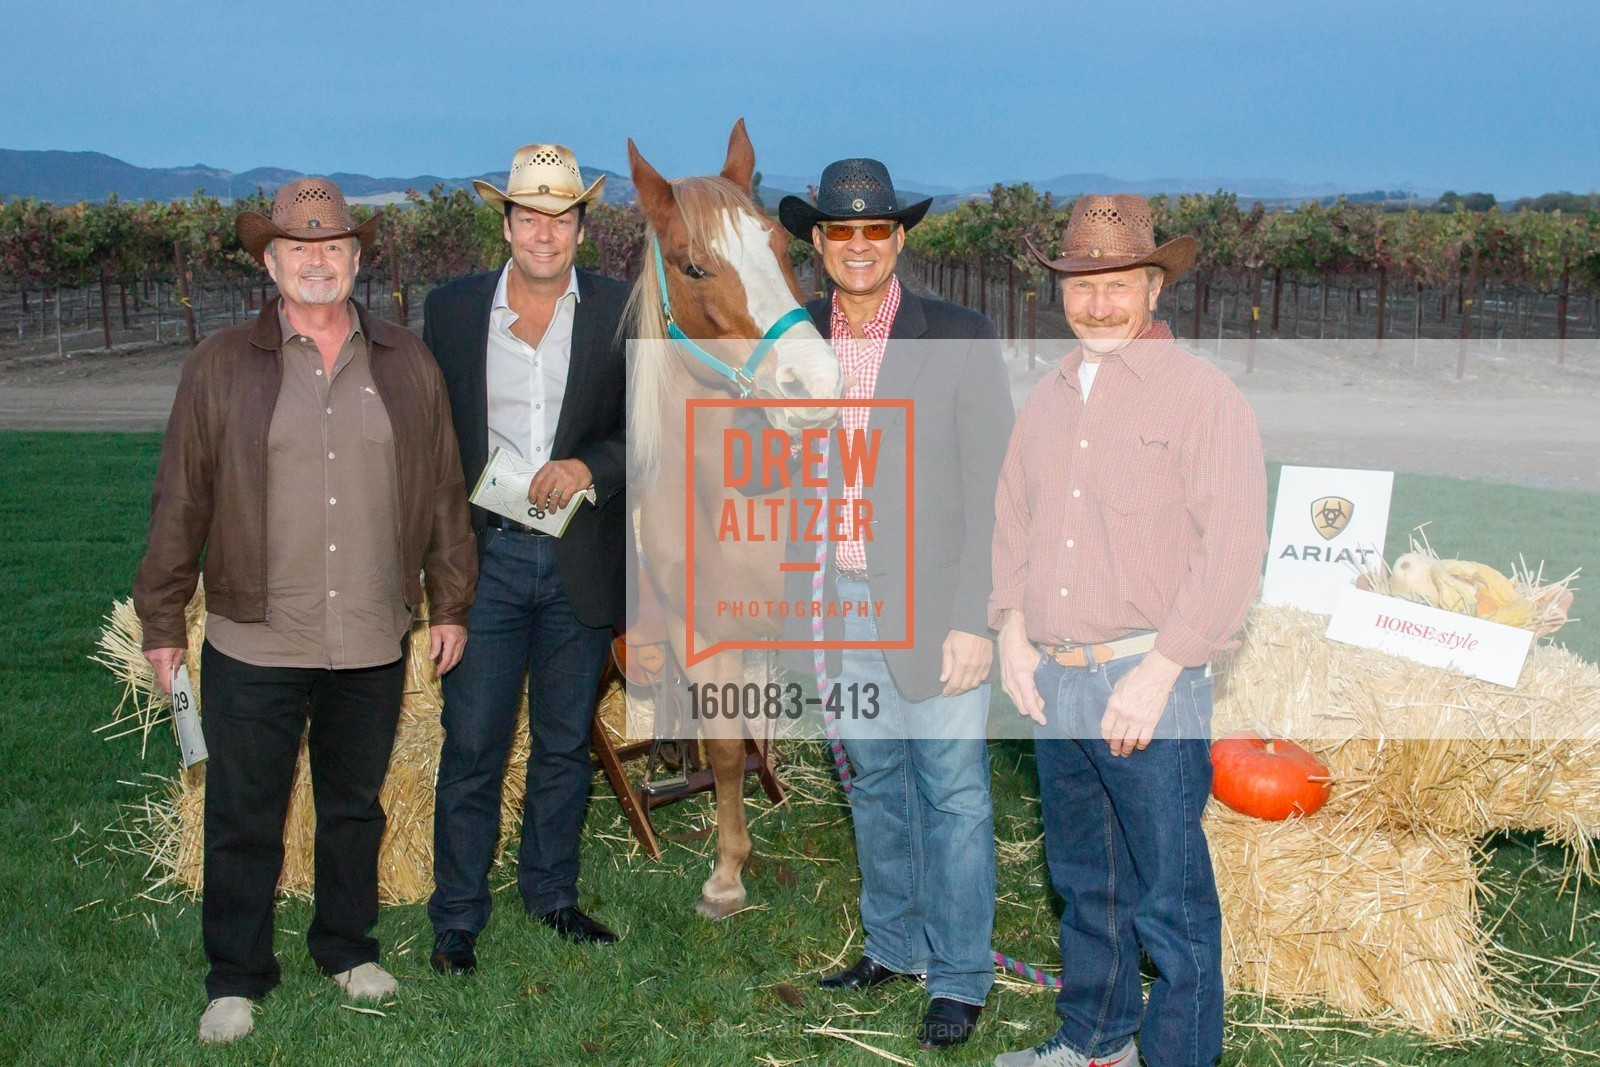 Bob Farrell, Dave Whiteside, Miguel Delgado, Paul Decker, A Harvest Barn Dance at Cornerstone Presented By Giant Steps Therapeutic Equestrian Center, Cornerstone Sonoma. 23570 Arnold Dr, October 24th, 2015,Drew Altizer, Drew Altizer Photography, full-service event agency, private events, San Francisco photographer, photographer California